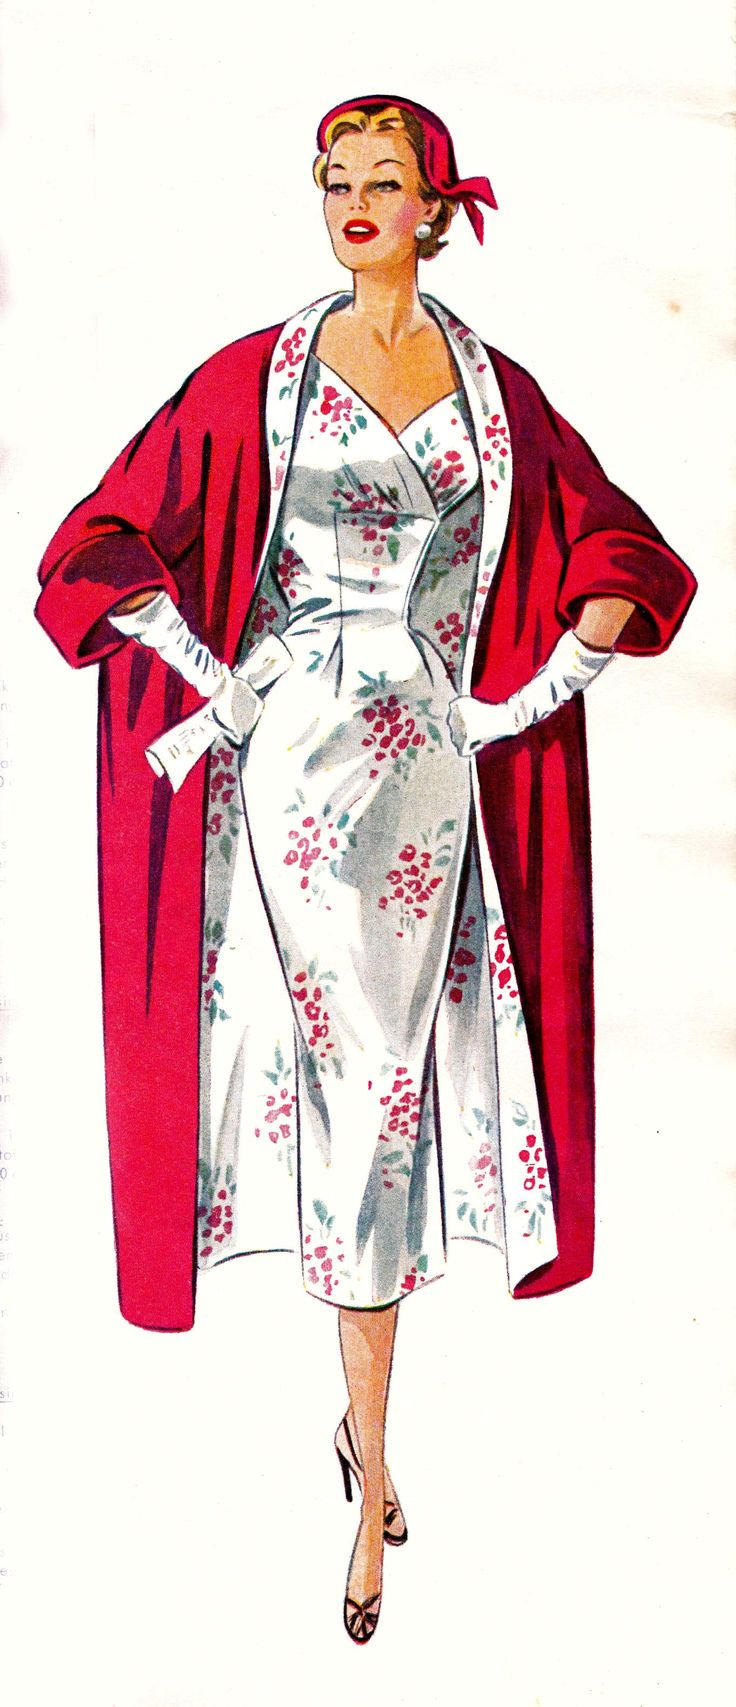 Vintage Sewing Pattern Evening coat is perfect in red peau de soie or bridal satin. Dress is perfected in a printed floral silk.                                                                                                                                                      More